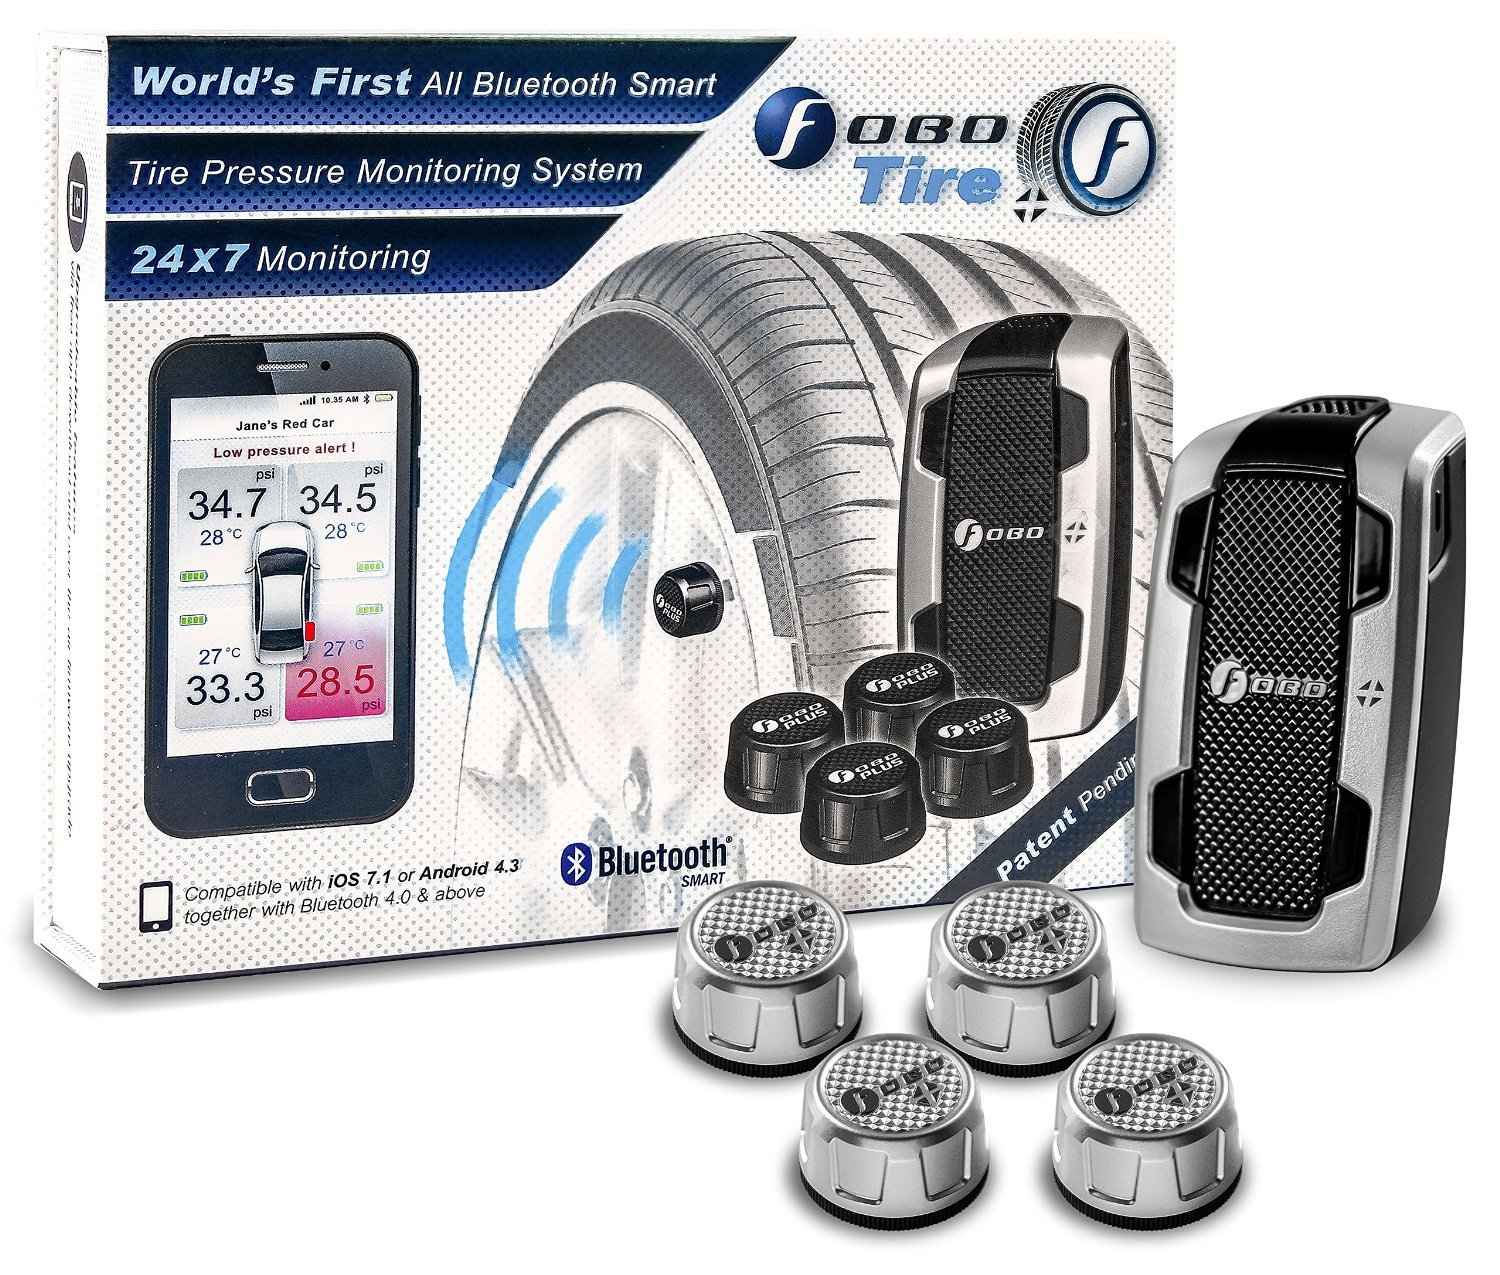 FOBO CAR TIRE BLUETOOTH TIRE PRESSURE MONITORING KIT SILVER FP1628